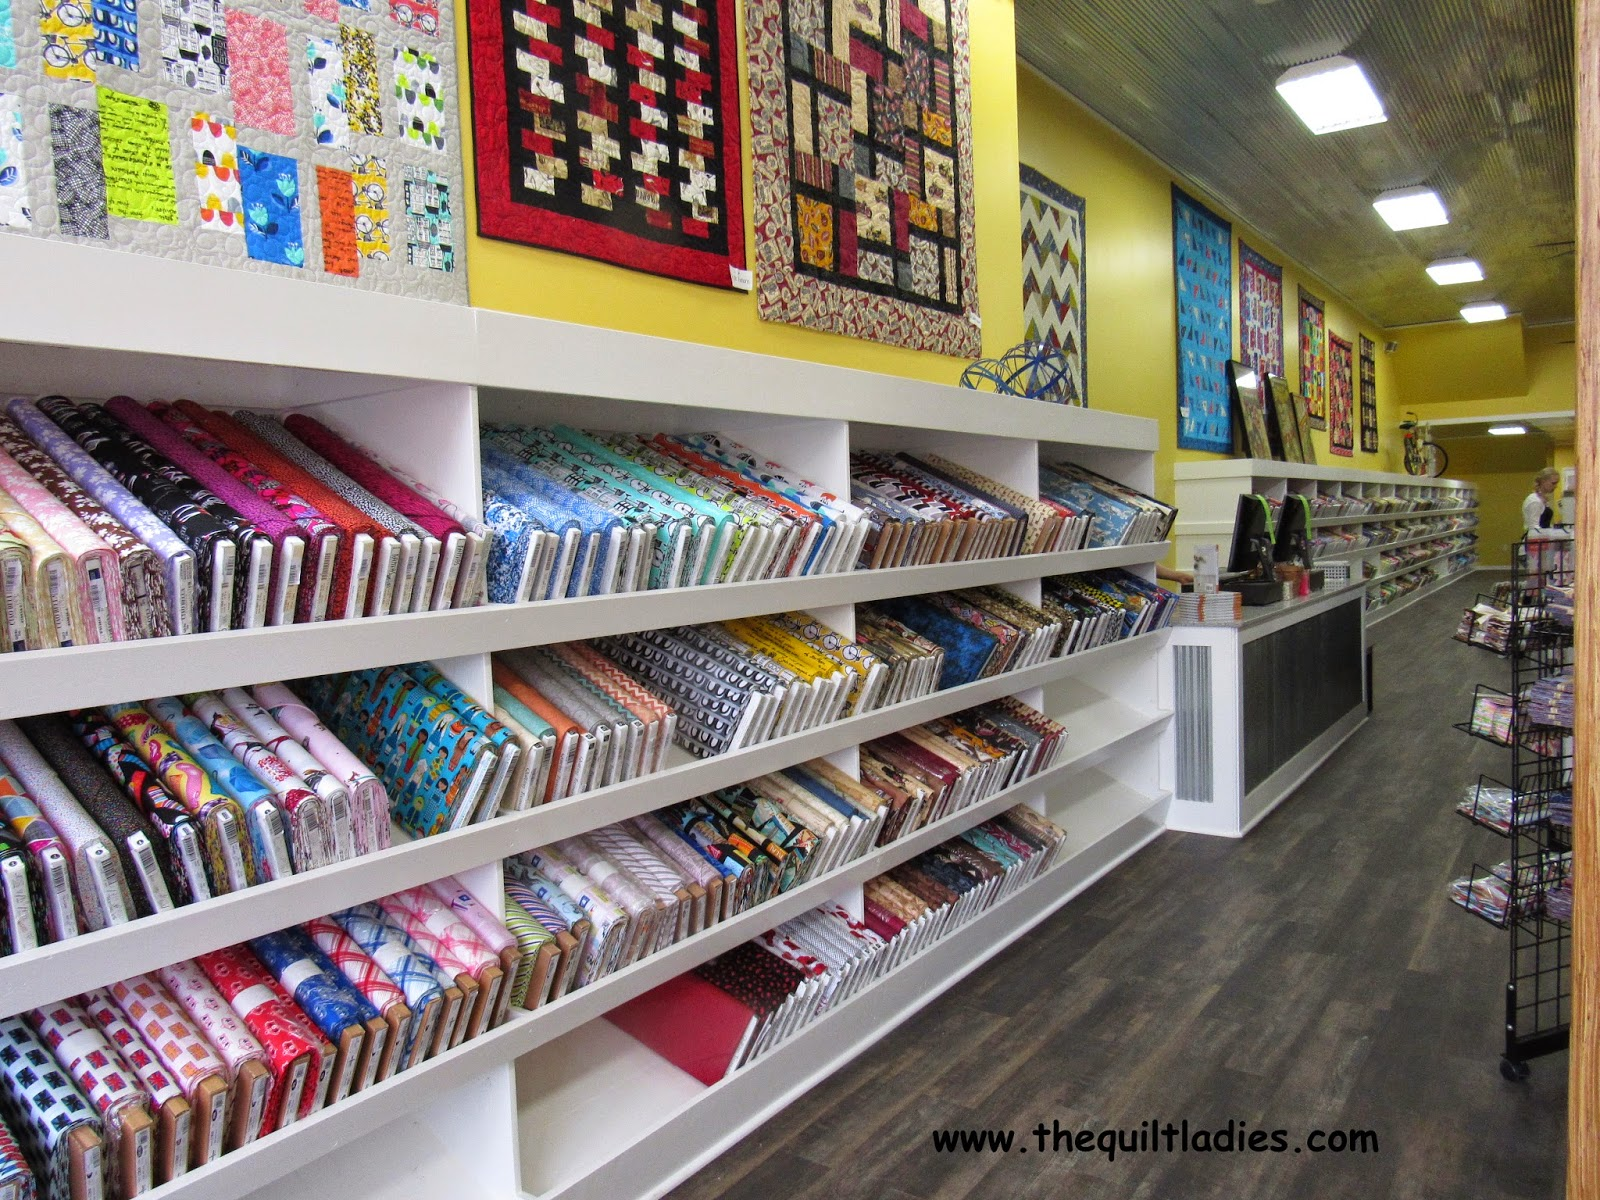 Photo's of Missouri Star Quilt Company quilt shop, by The Quilt Ladies